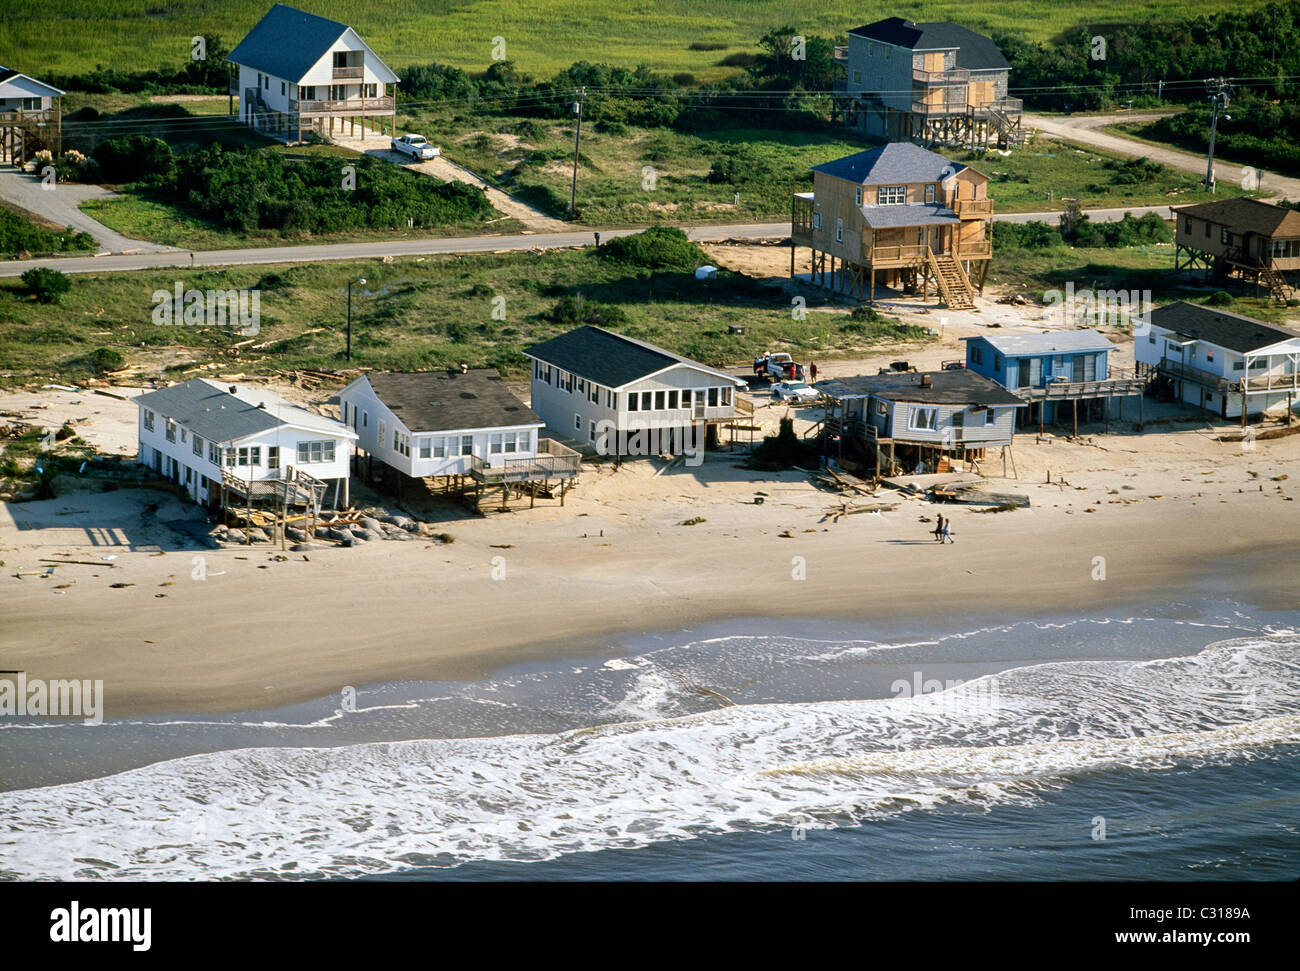 Local residents check the damage to beach front homes caused by Hurricane Floyd on Oak Island, North Carolina. - Stock Image